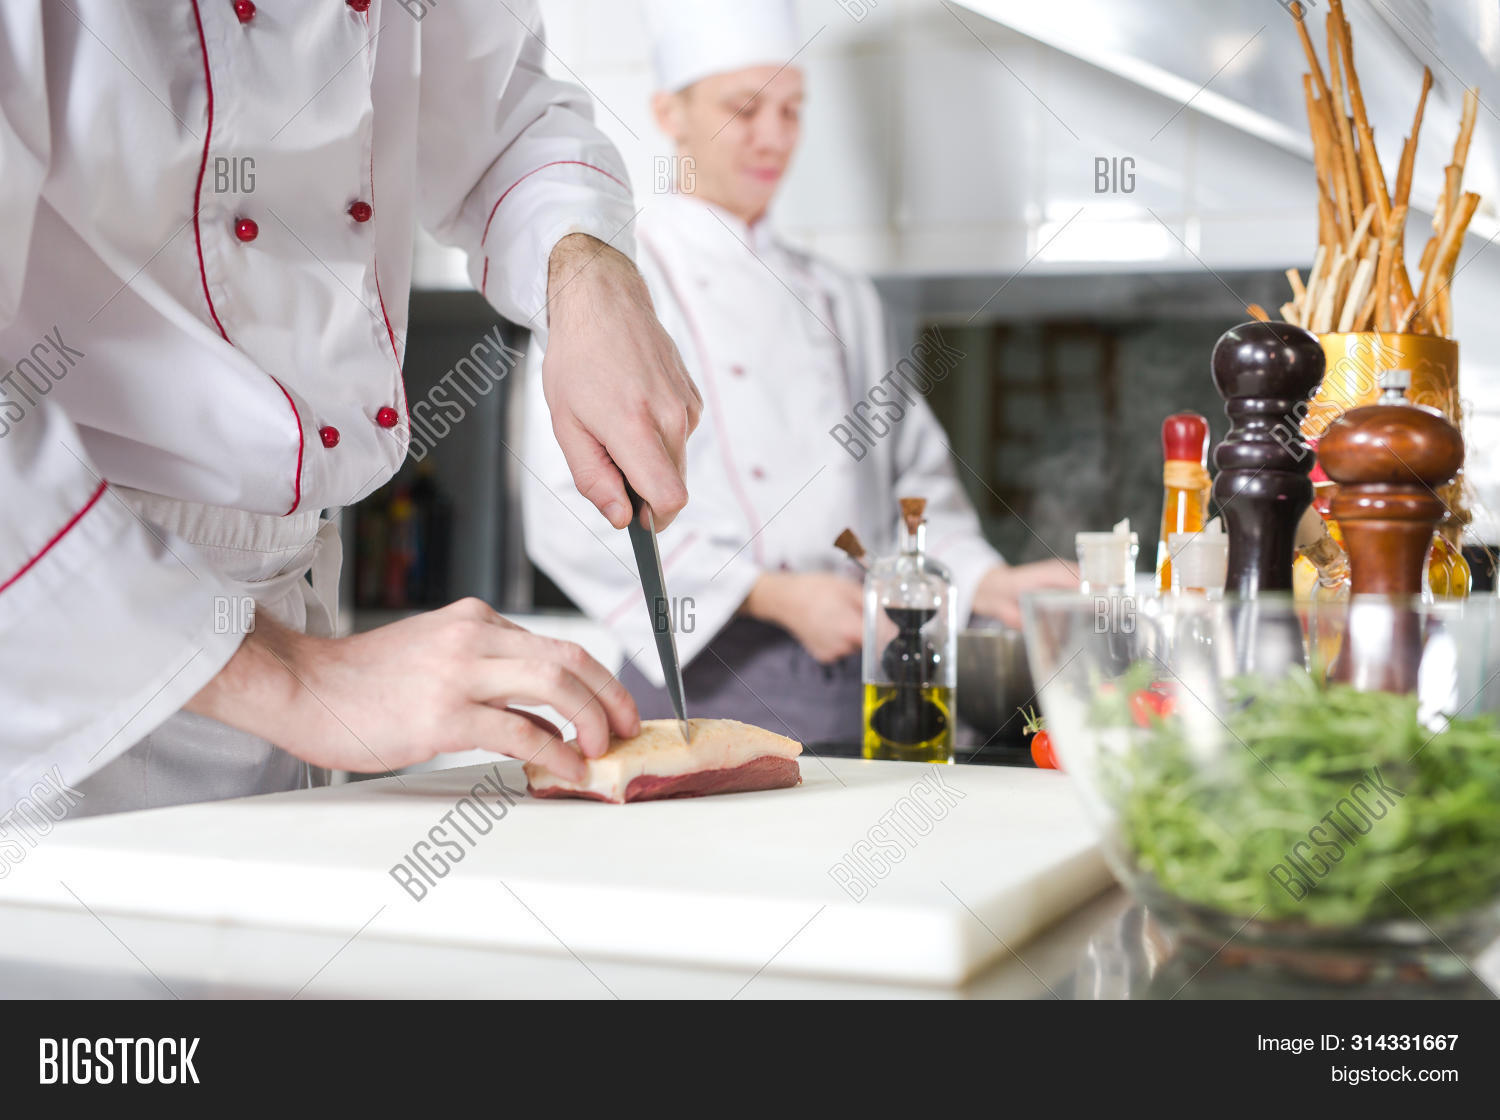 background,barbeque,beef,board,bone,butcher,caucasian,chef,chief,chopping,closeup,cook,cooking,cut,cutting,dinner,fat,food,fresh,gourmet,grill,hand,healthy,ingredients,kitchen,knife,lamb,male,man,market,meal,meat,menu,nutrition,person,piece,pork,preparation,professional,protein,raw,recipe,red,restaurant,slice,steak,table,uncooked,veal